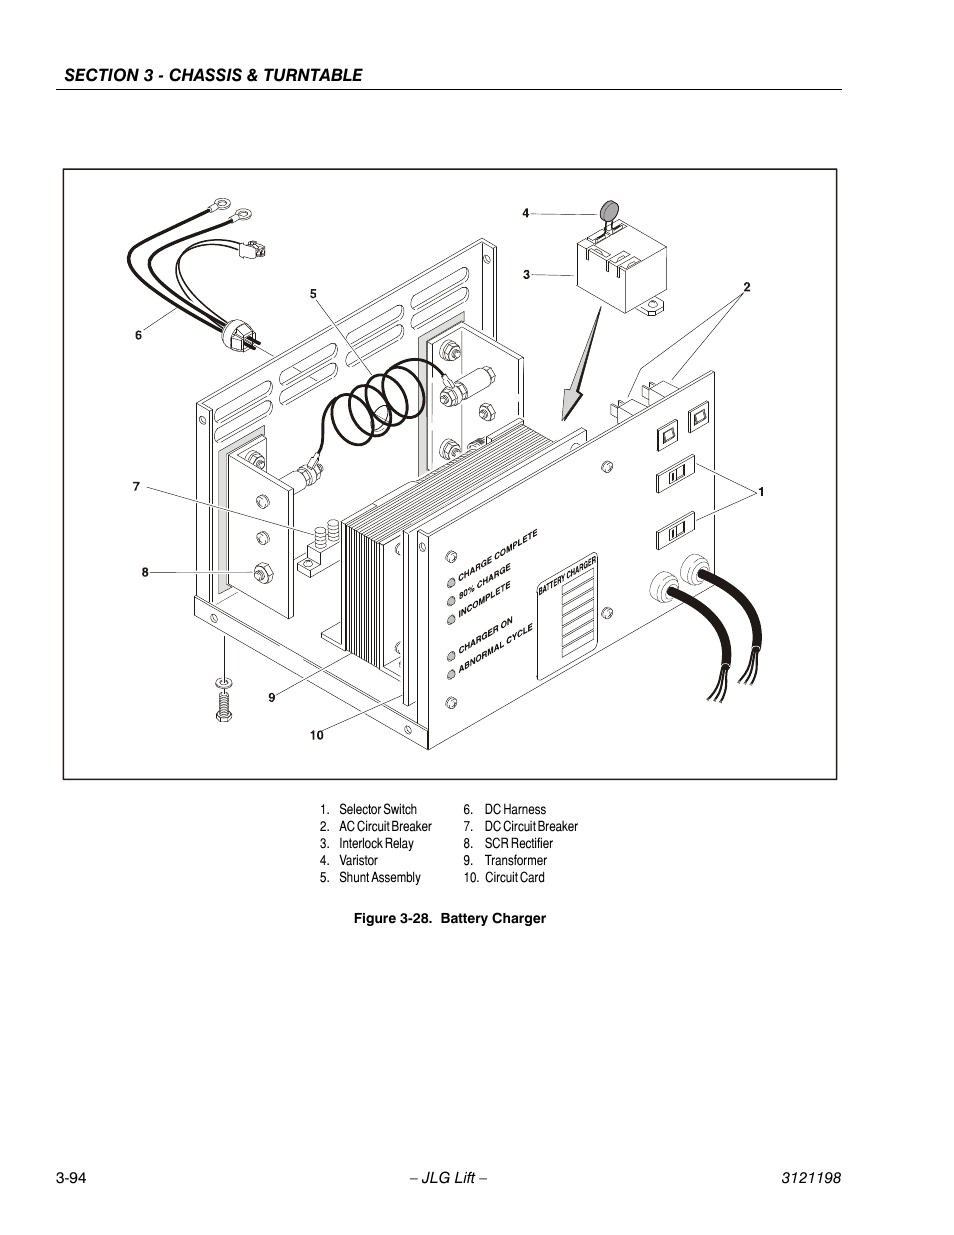 medium resolution of battery charger 95 jlg t350 service manual user manual page 130battery charger 95 jlg t350 service